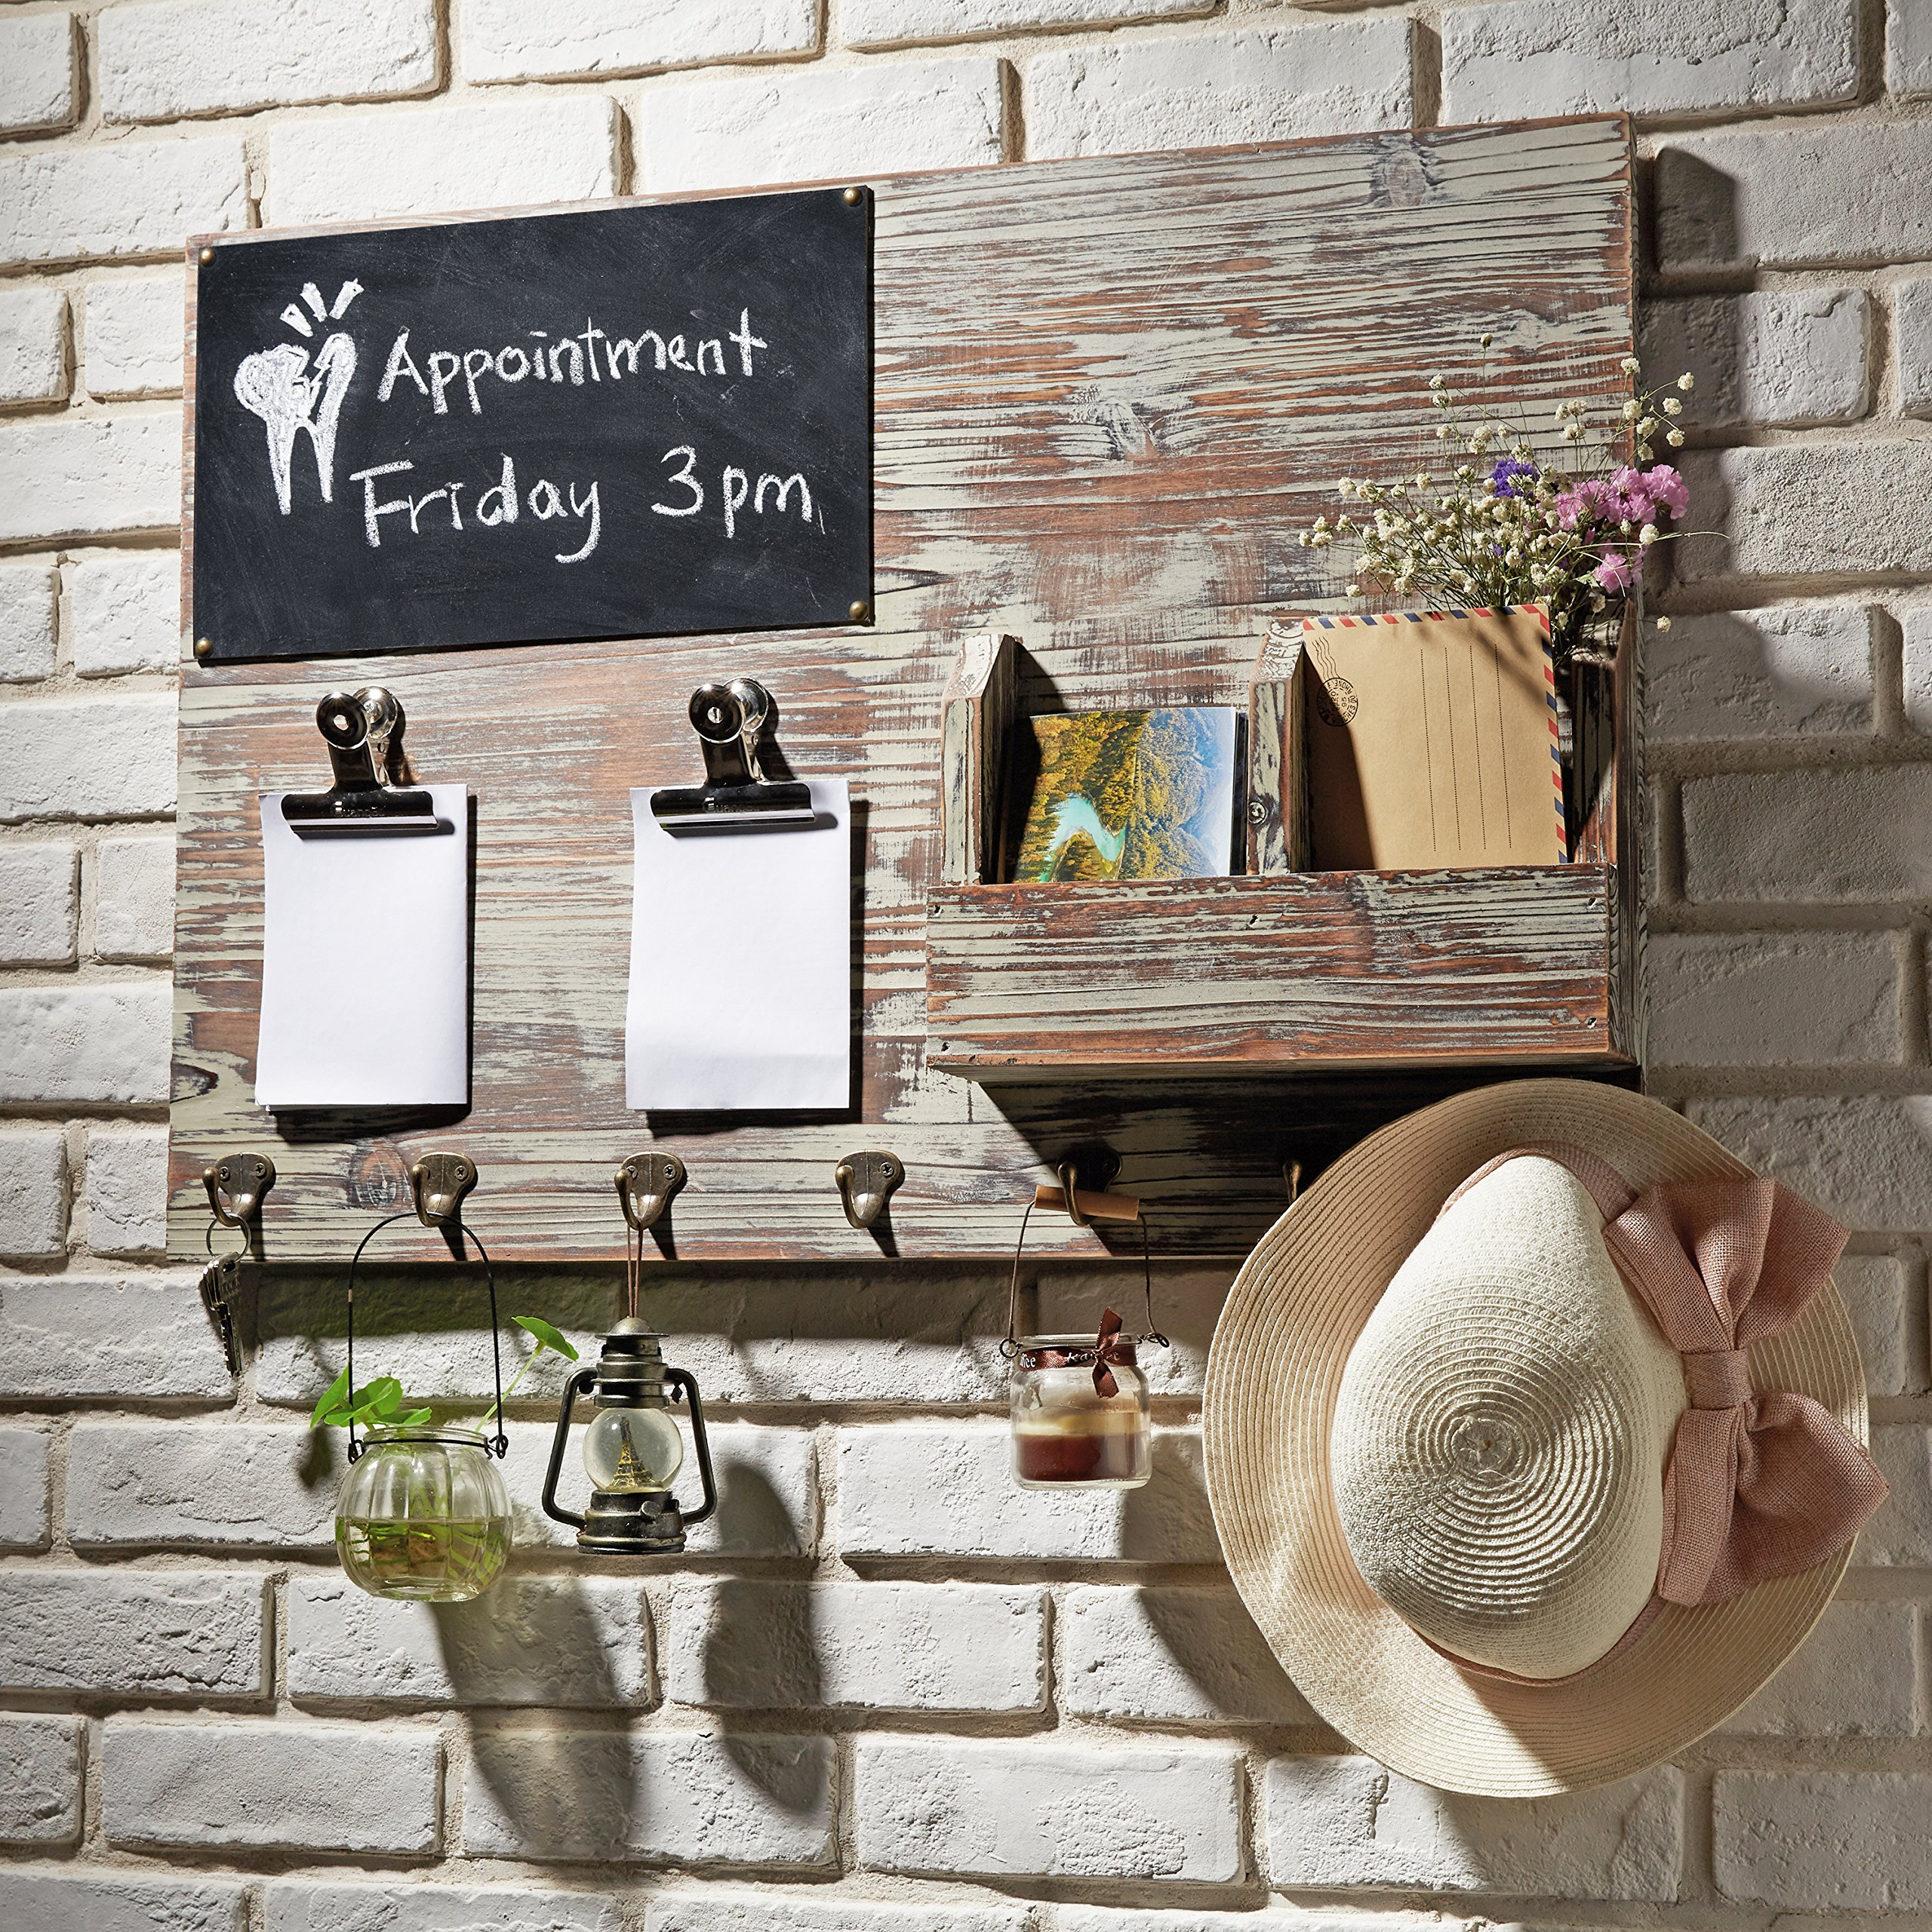 Torched Wood Wall Mounted Chalkboard Memo Clips, Mail Sorter and Key Hooks, Entryway All-in-One Organizer